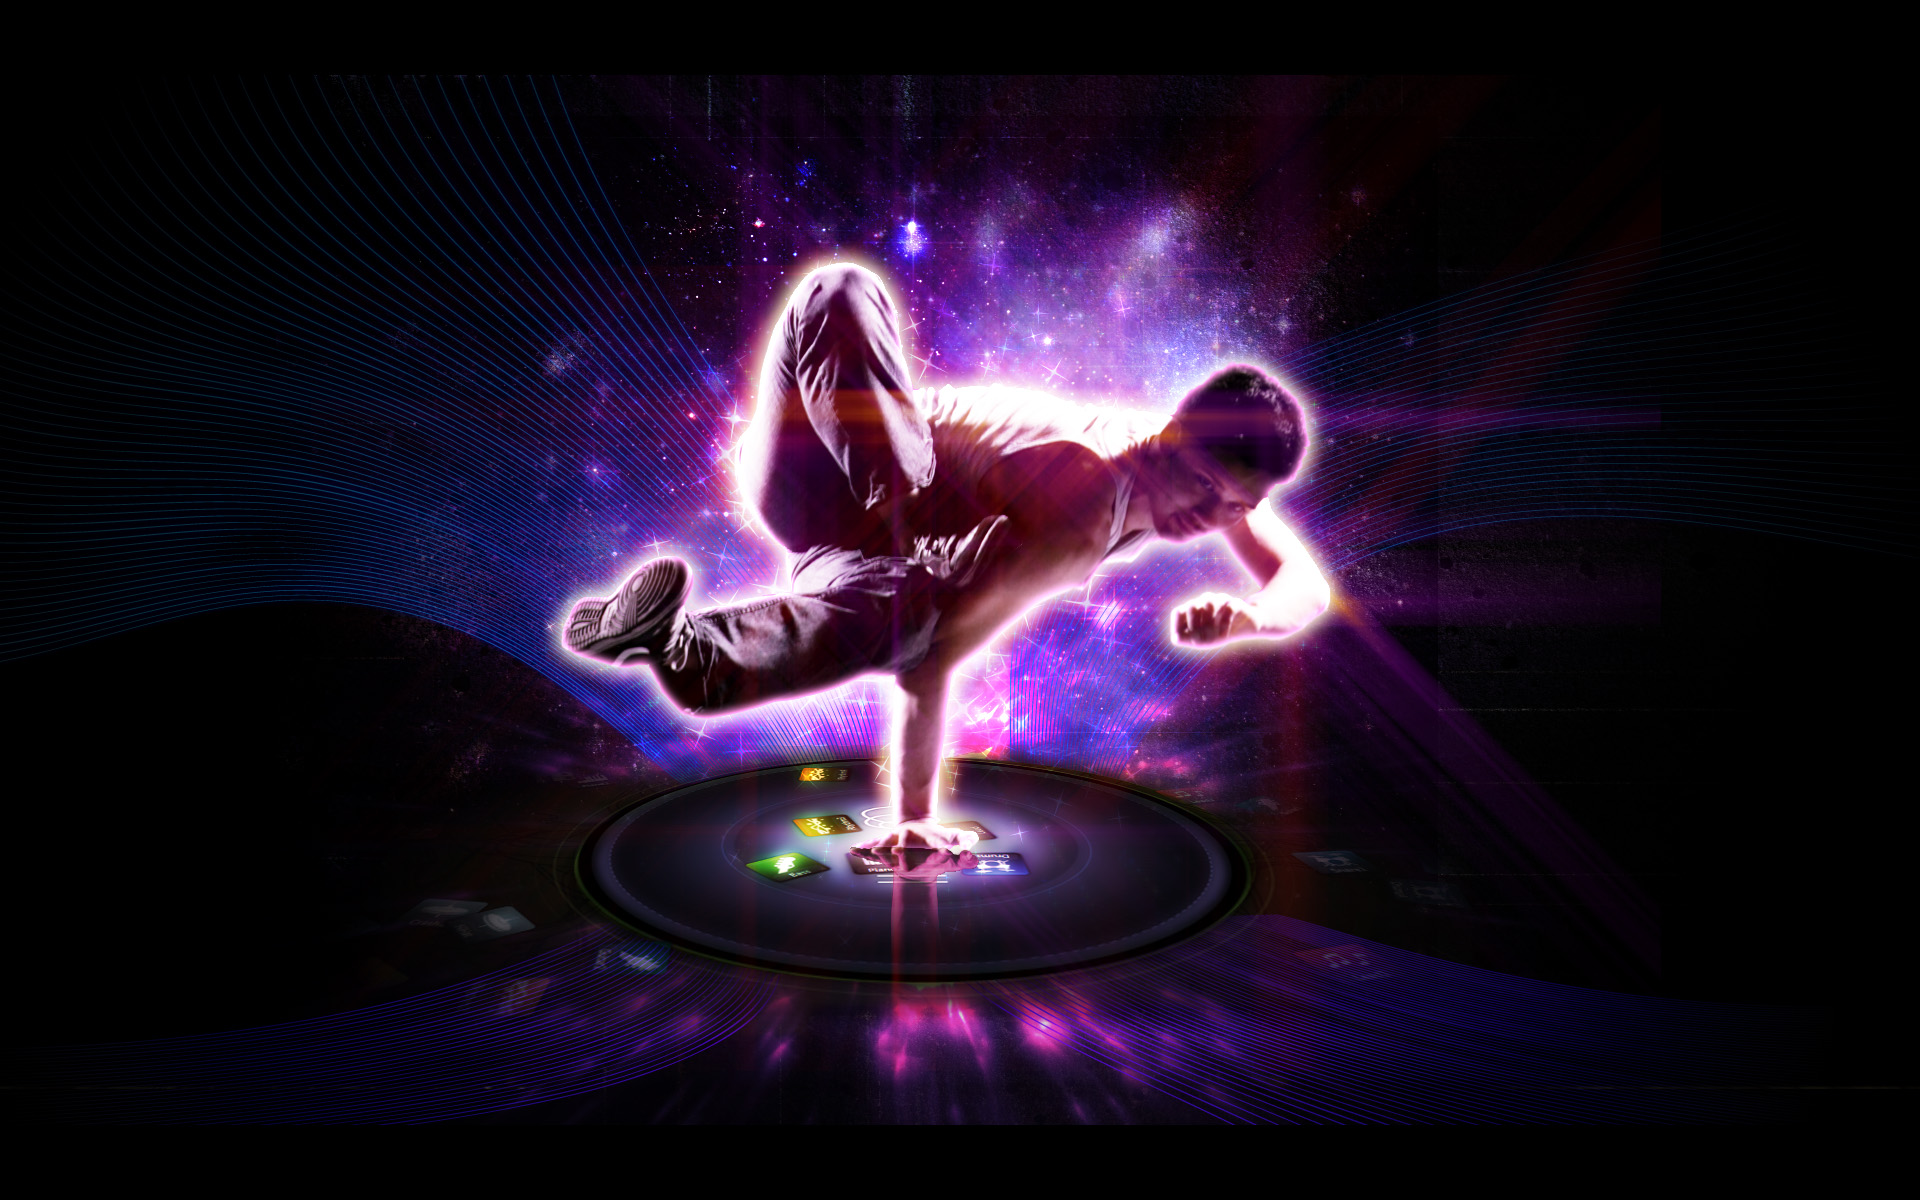 Wallpapers Hd 3d Music: Dj Pictures Wallpapers